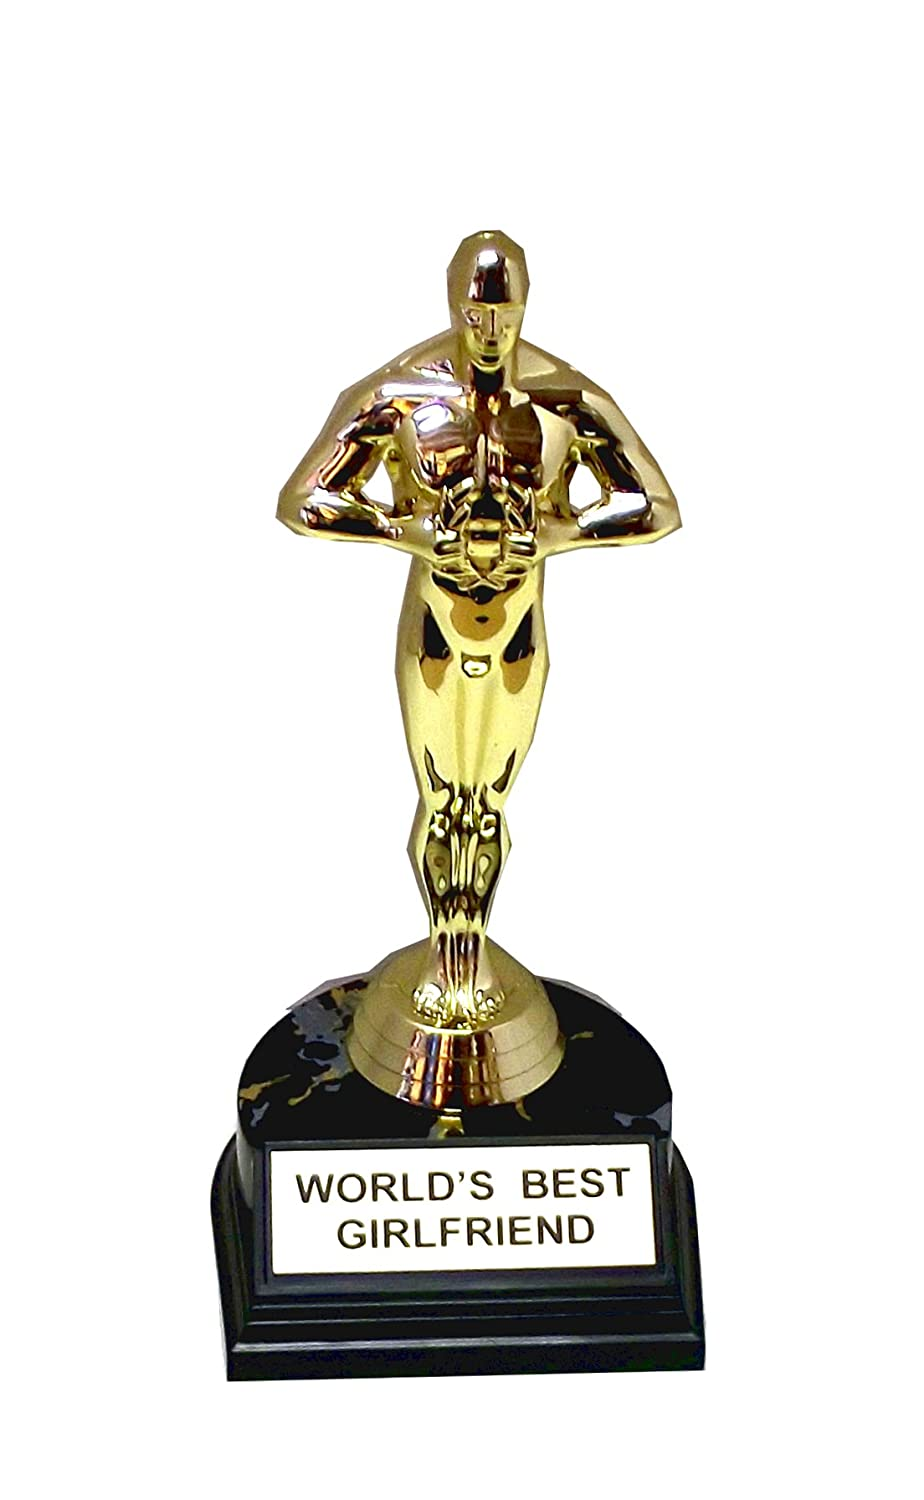 Amazon.com: Trophies, Medals & Awards - Accessories: Sports ...